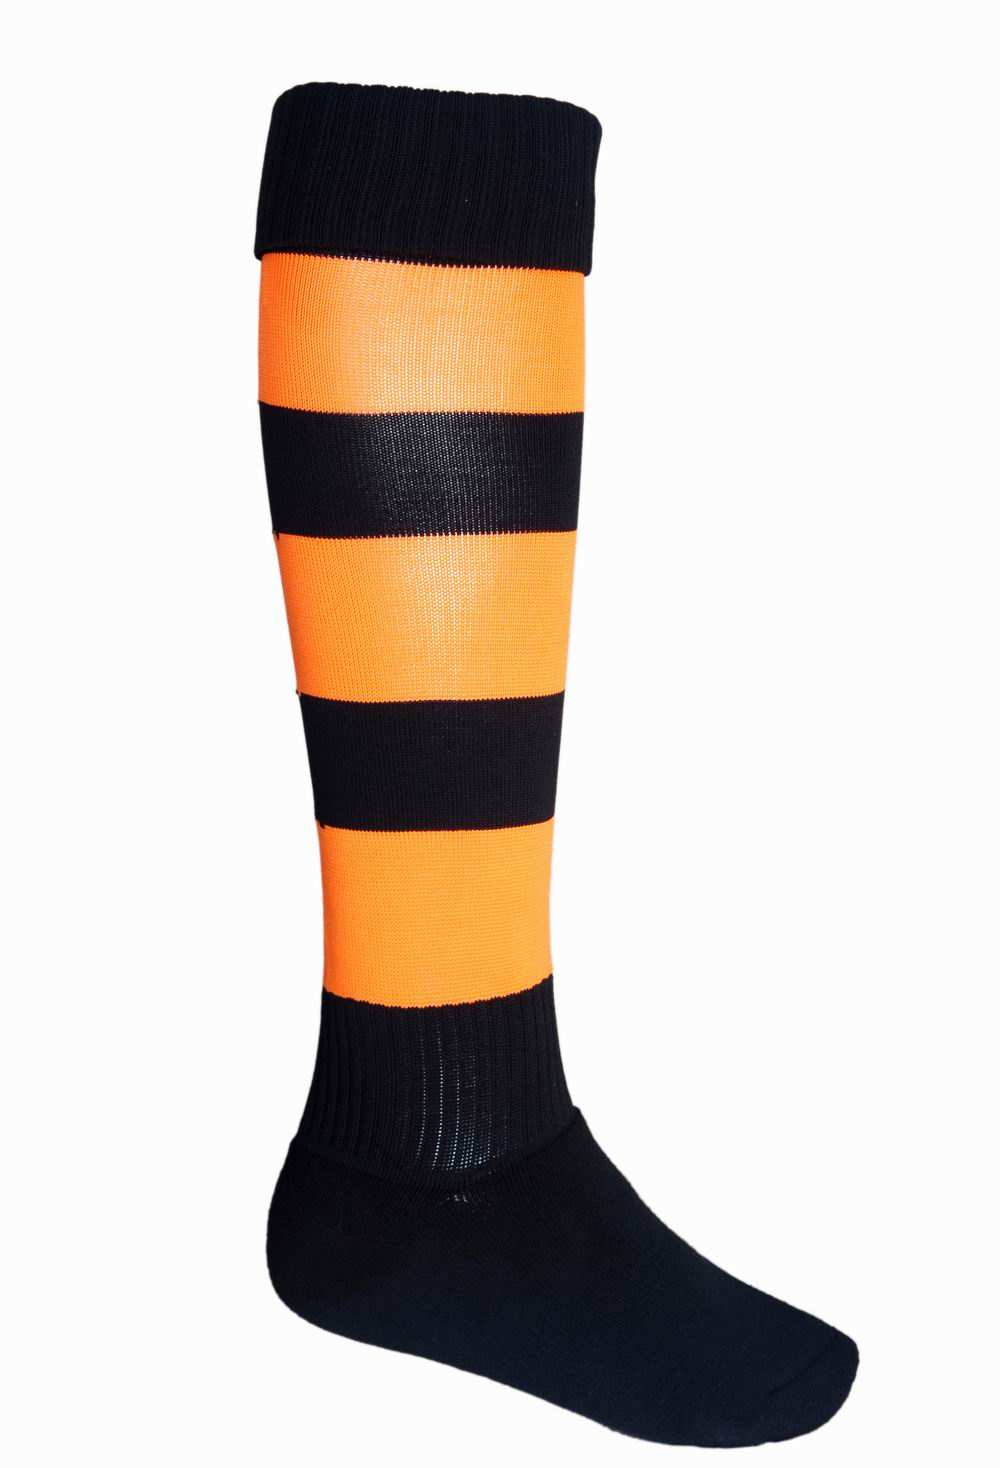 bocini/socks/small black orange footy socks